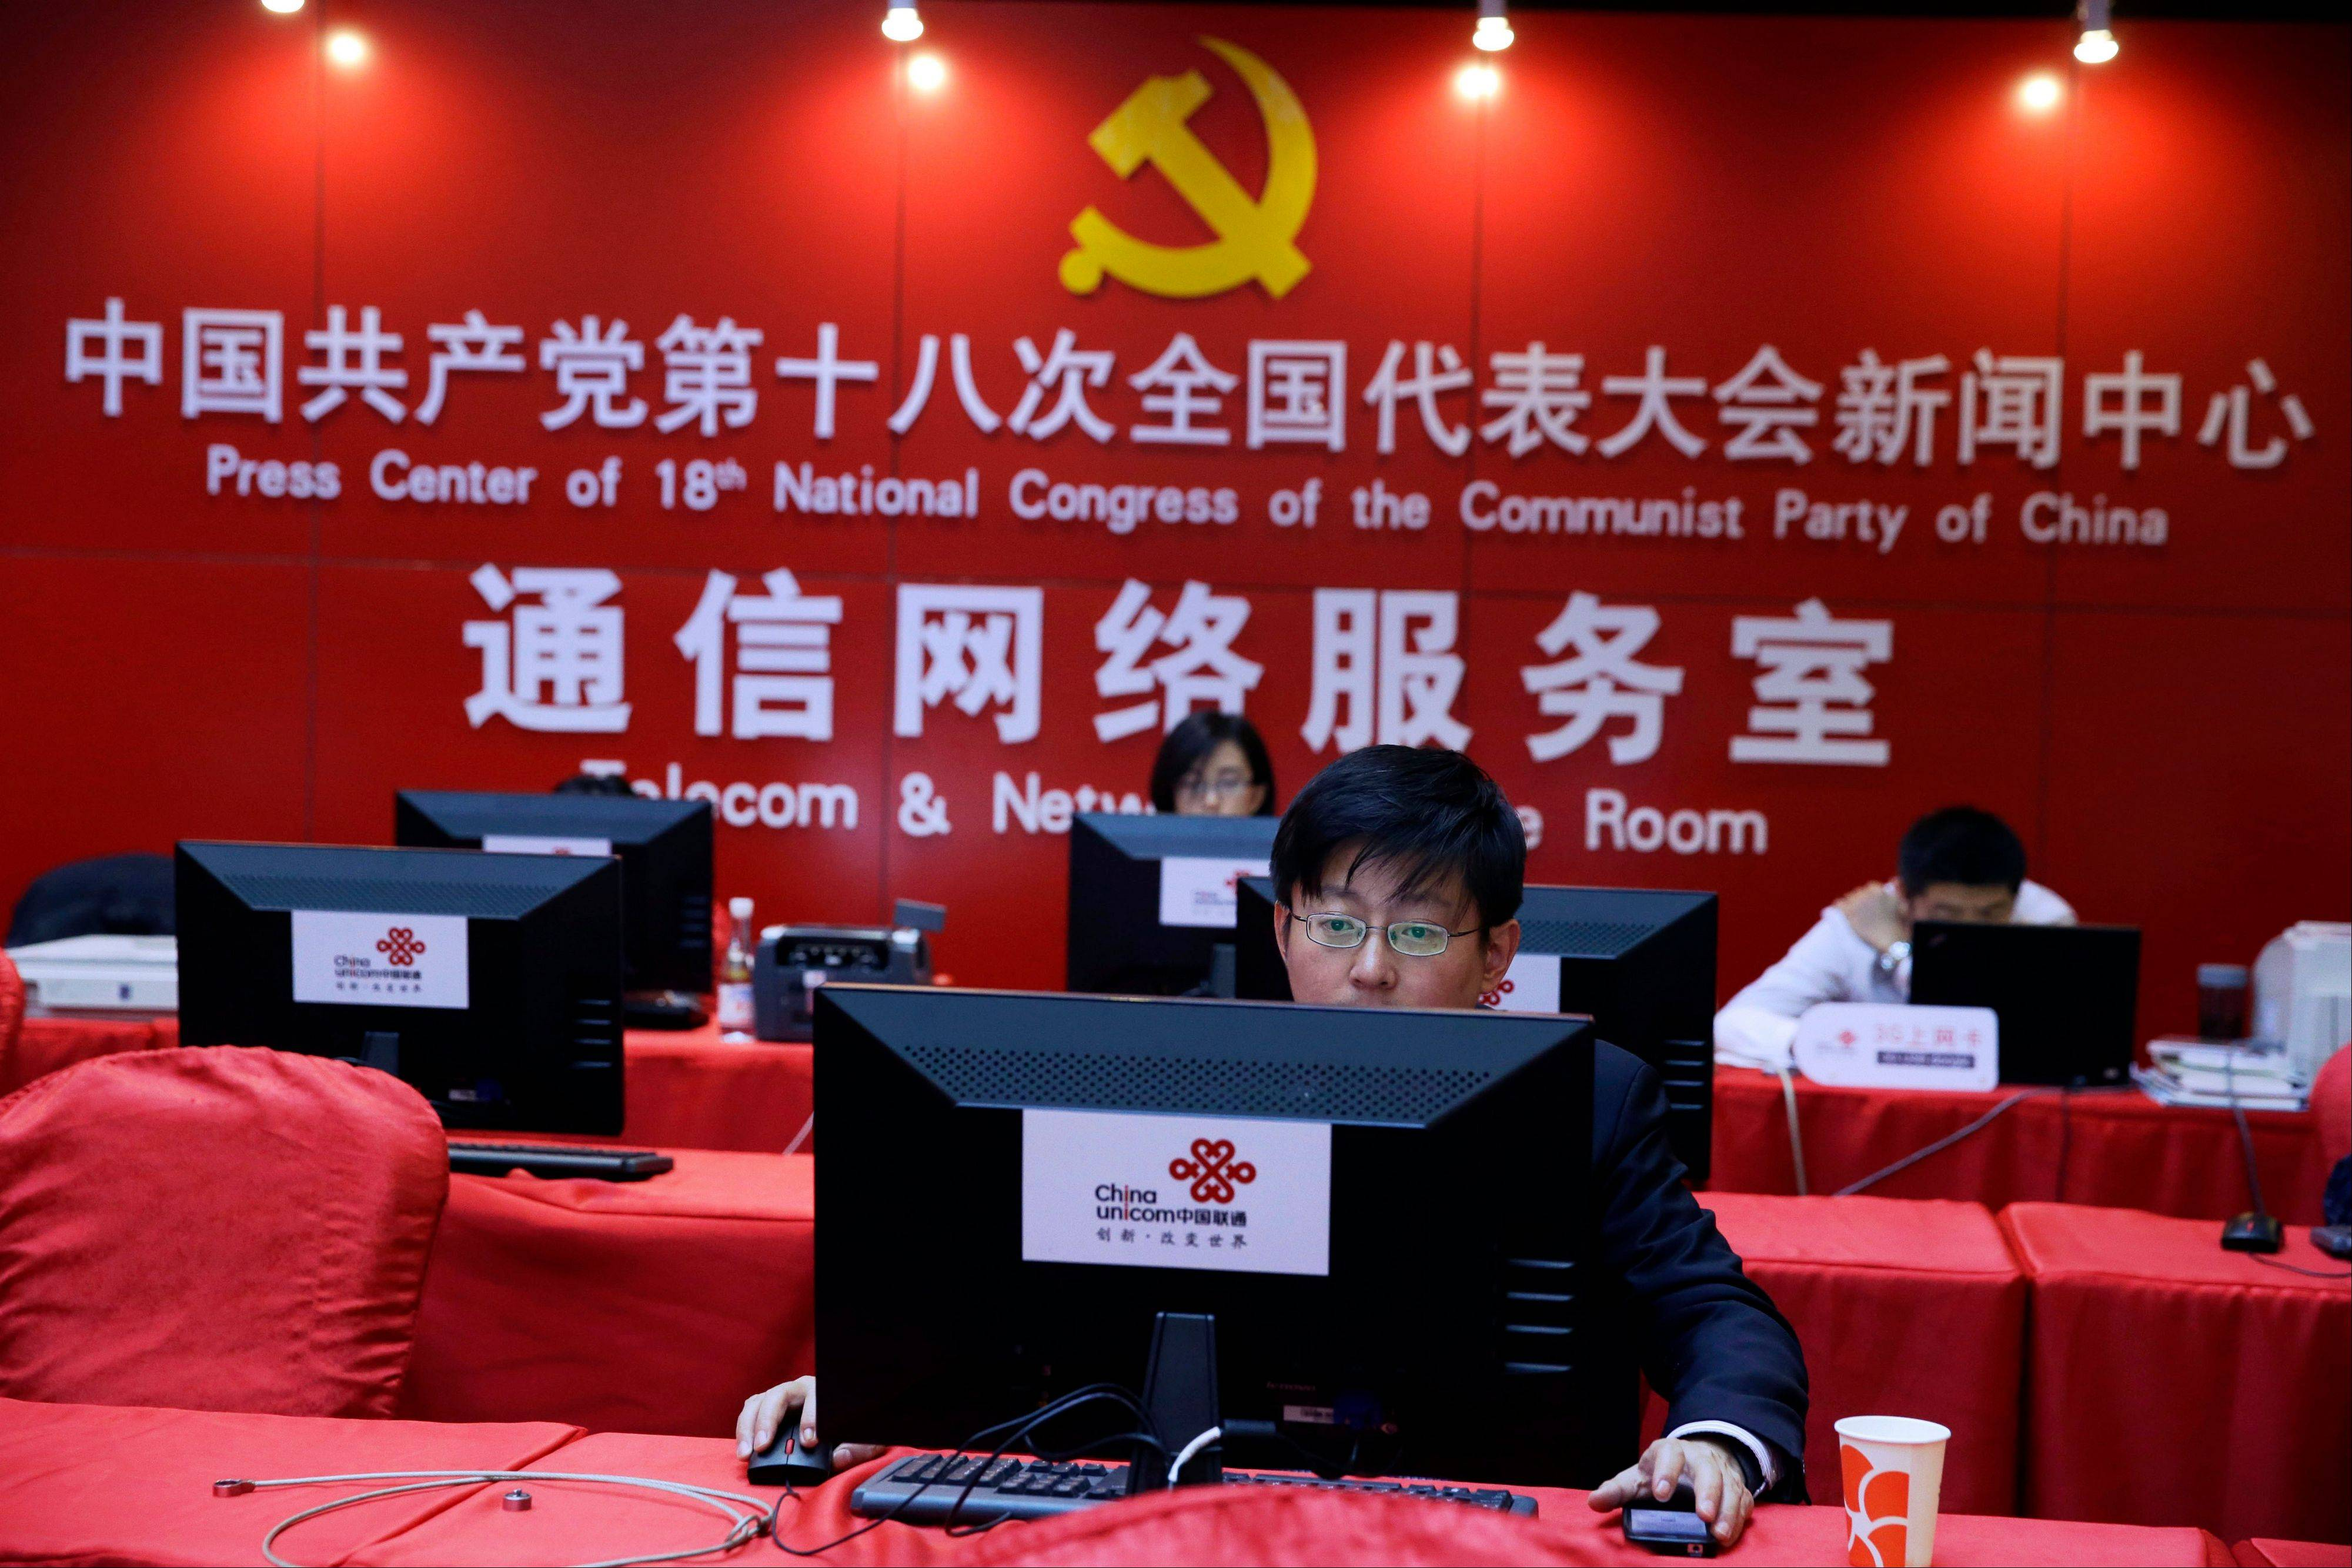 A Chinese man uses a computer Tuesday at the press center of the 18th Communist Party Congress in Beijing. During China's last party congress, the cadres in charge of the world's most populous nation didn't know a hashtag from a hyperlink. But five years later, there's a new message from Beijing: The political transition will be microblogged.